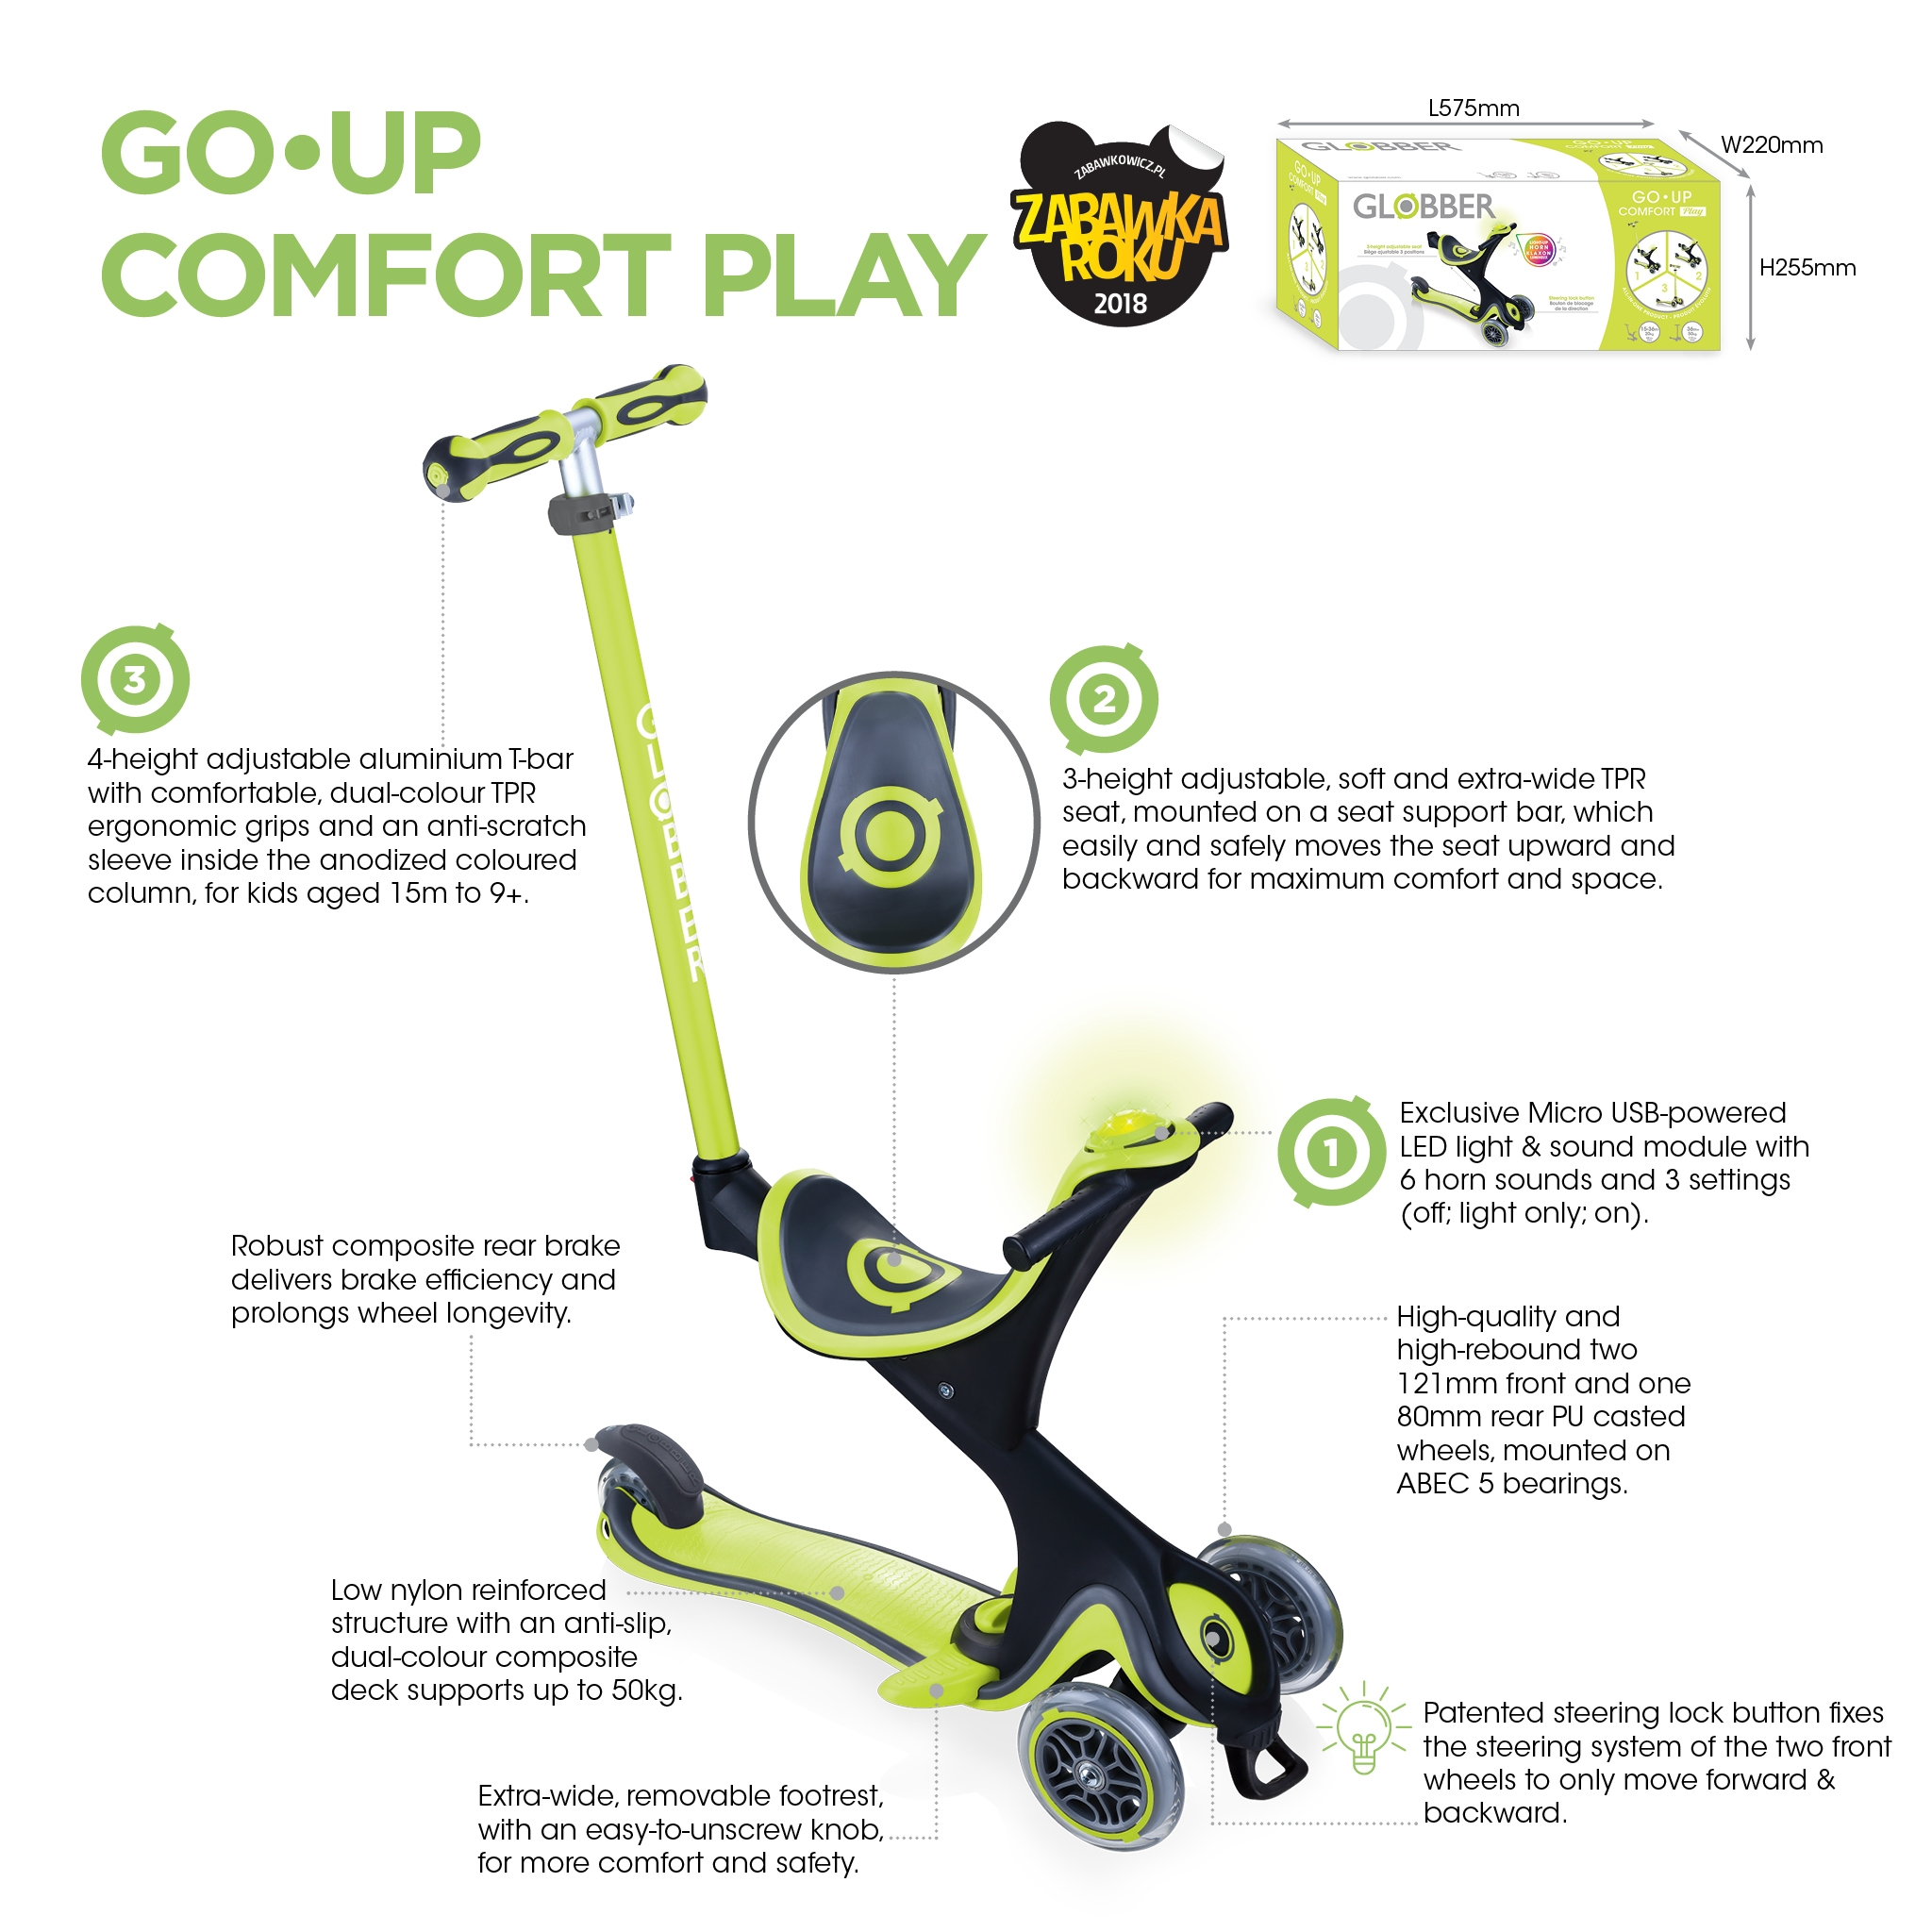 GO-UP-COMFORT-PLAY 1